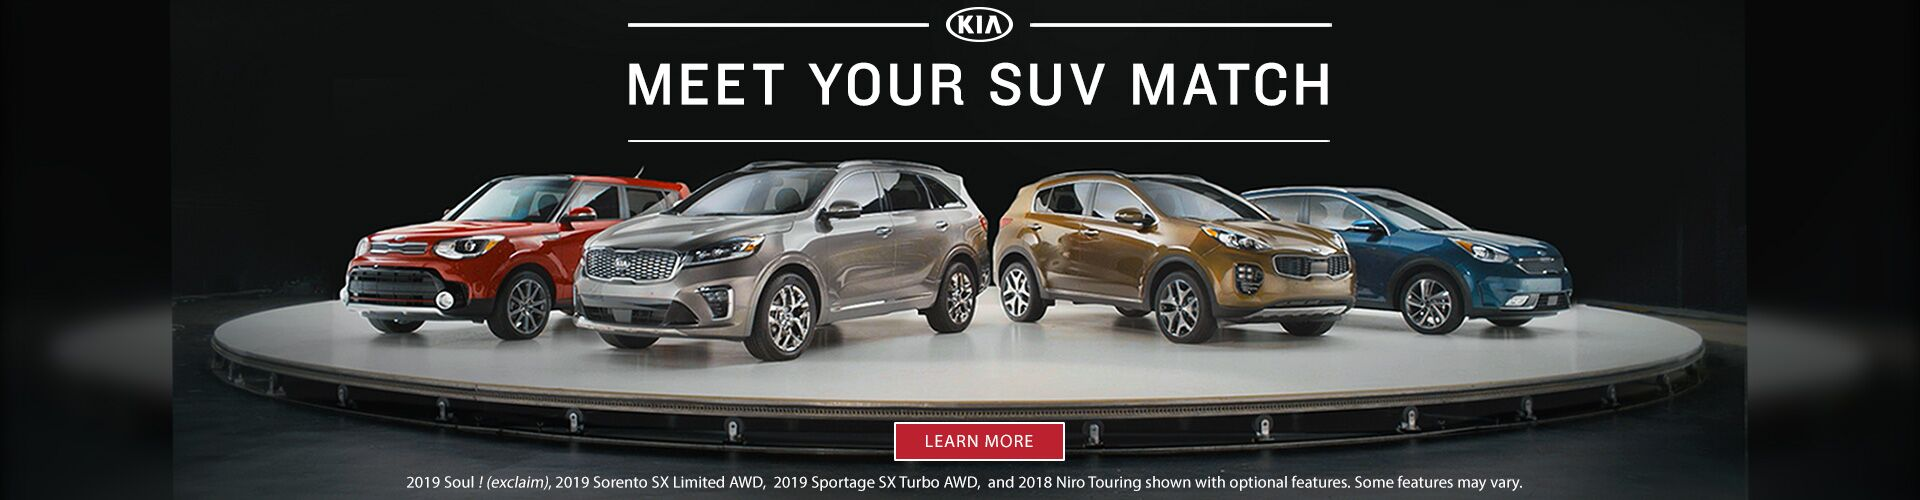 Meet Your SUV Match